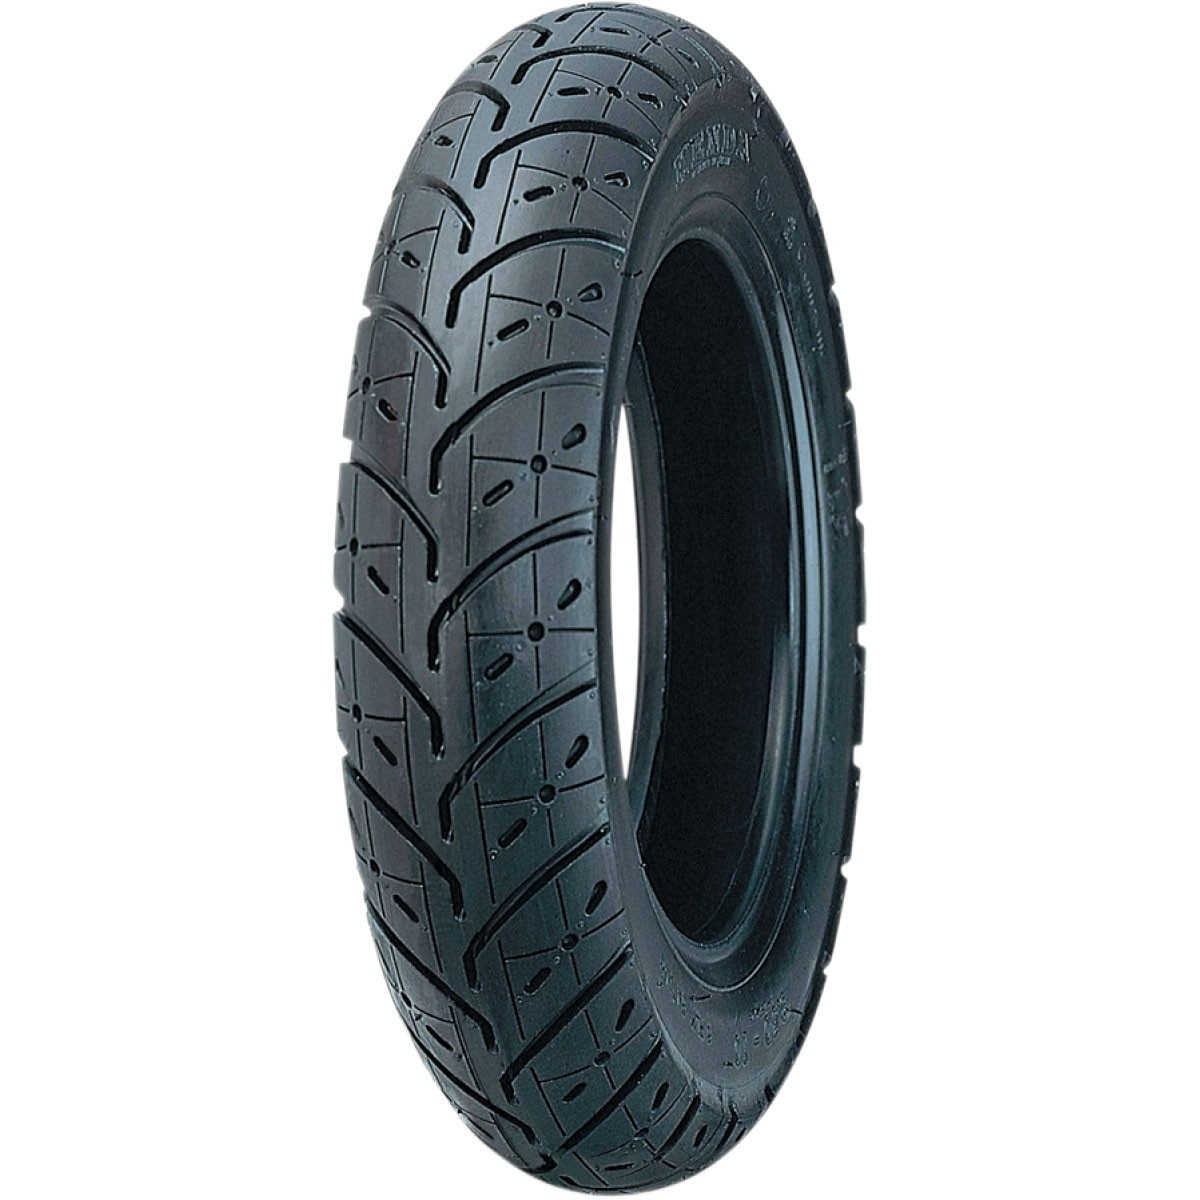 Kenda K329 3.50 10 Requires Tube Front/Rear Two-Wheeler Tyre